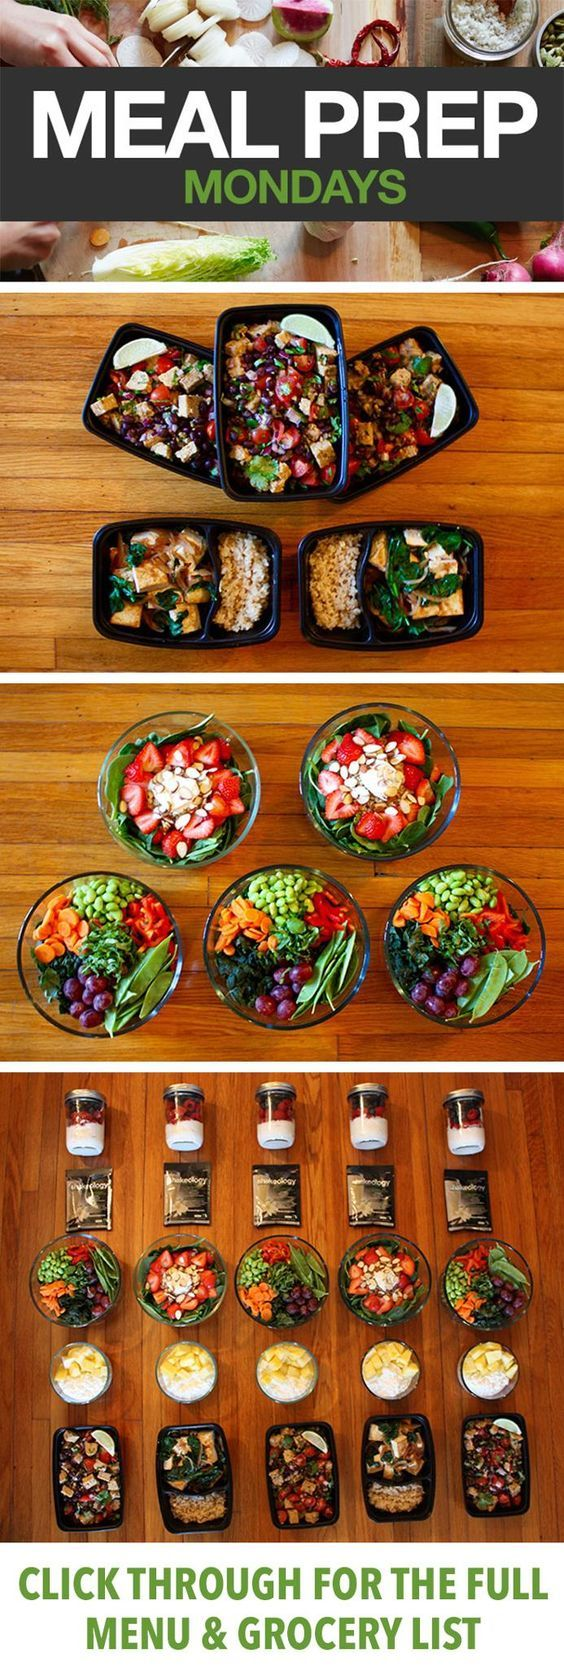 This Healthy 1200-1500 Calorie Vegetarian Meal Prep Is a Must See. If you are vegetarian, or if you've ever considered switching to a vegetarian diet, this 21 Day Fix-inspired meal prep menu is a great place to start. The Beachbody nutrition experts created this week of meat-free breakfasts, lunches, dinners, and snacks to help vegetarians and others practice portion control and still get enough essential nutrition in their diets. A complete grocery list is included to help you find everythi